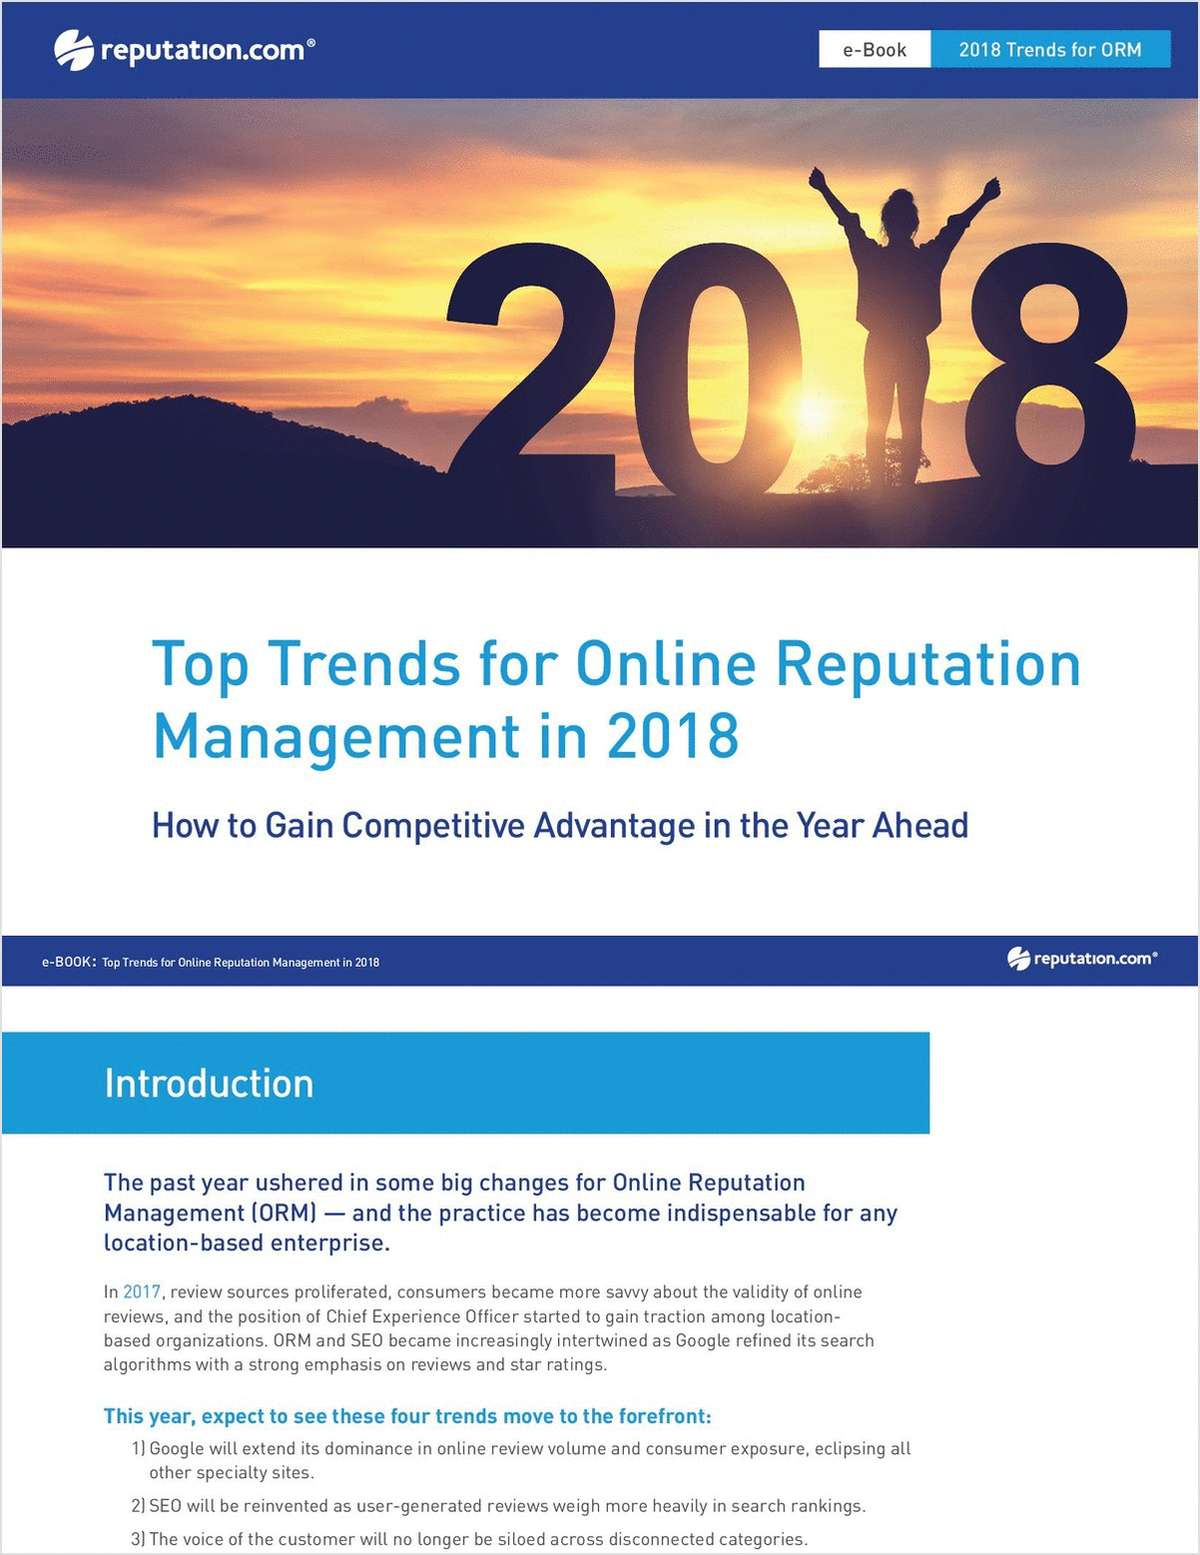 Top Trends for Online Reputation Management in the Healthcare Industry